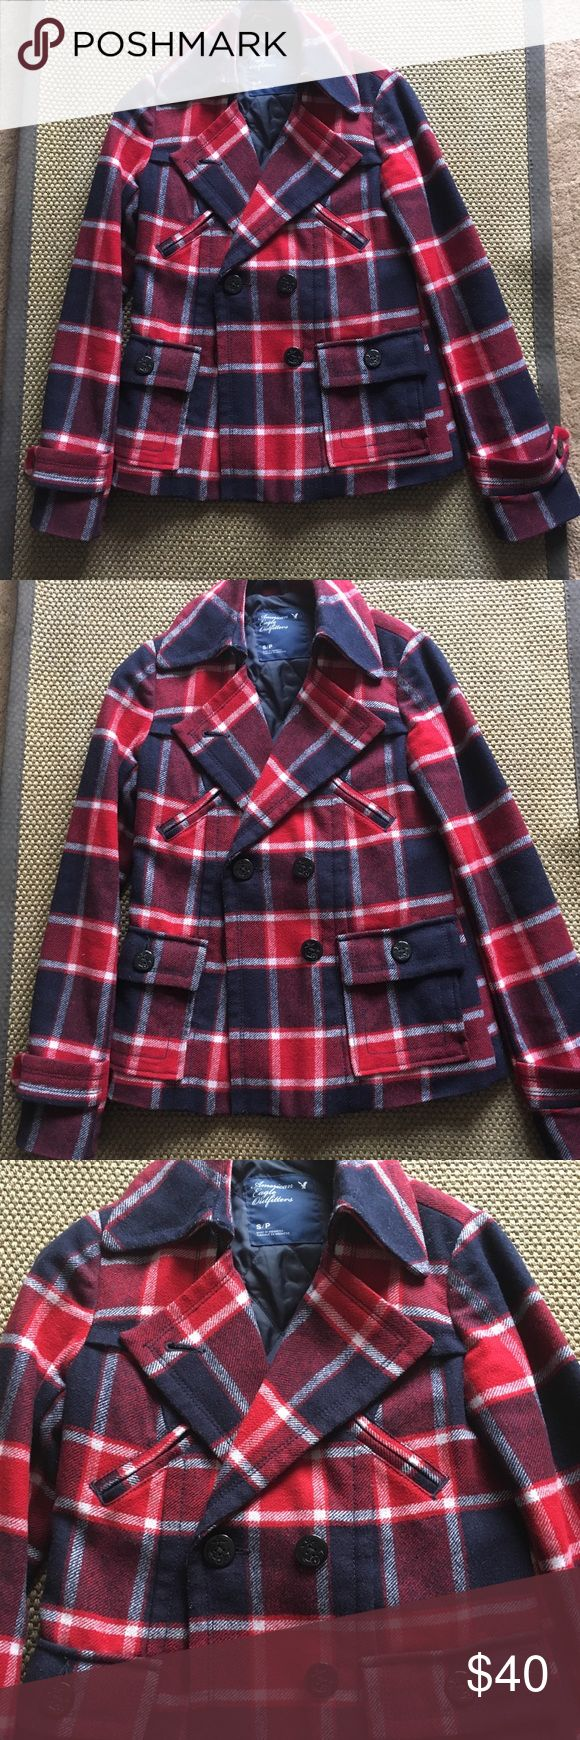 American Eagle Plaid Pea Coat This adorable coat is in very good used condition. Navy, red and white plaid pattern. It has two upper faux pockets and two usable pockets located in the front. She'll is 40% wool 60% rayon. Lining & Filling 100% polyester. Minor piling in wool from normal wear  but not very noticeable at all. American Eagle Outfitters Jackets & Coats Pea Coats